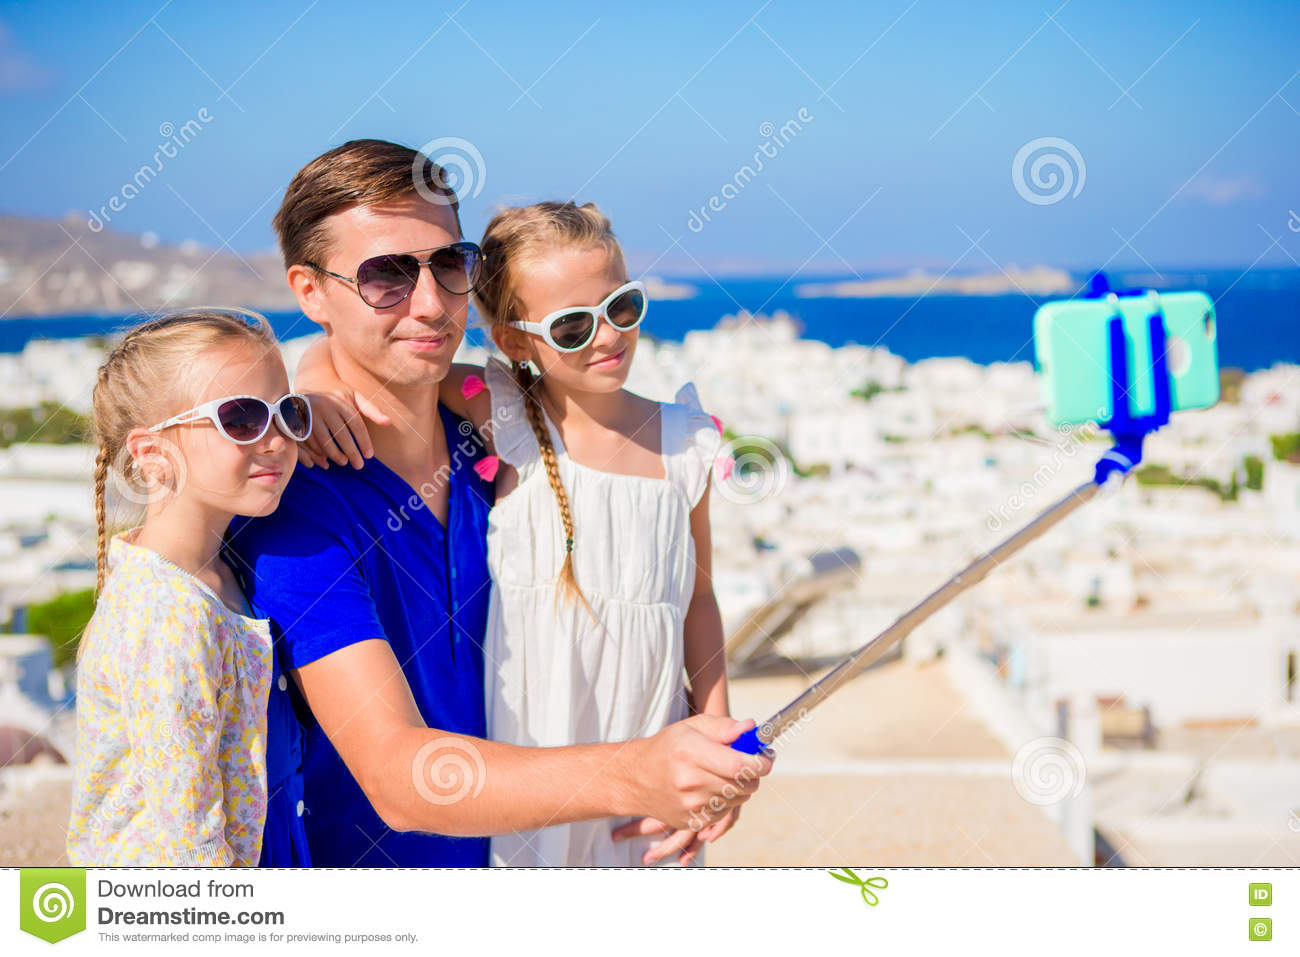 Download Family Vacation In Europe Father And Kids Taking Selfie Background Mykonos Town Greece